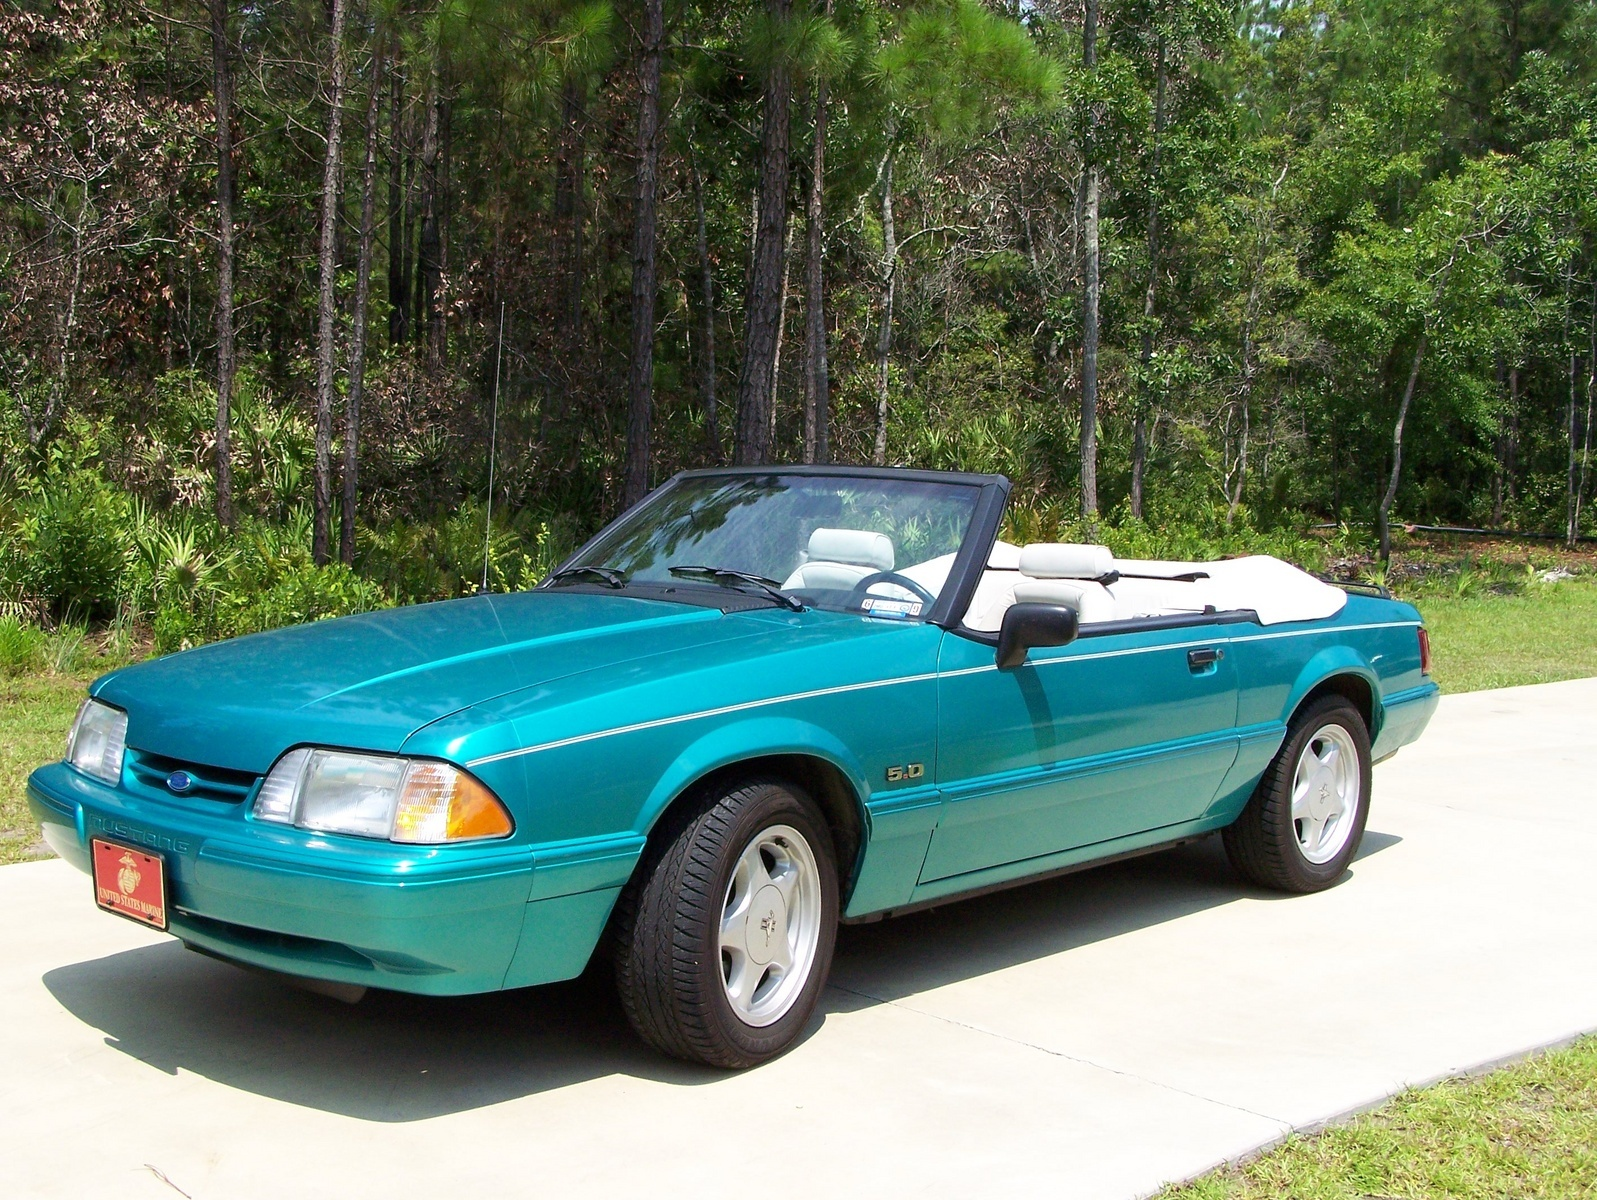 But Convertible Ford Mustang Questions Low Mile Vehicle But Don T Know How To